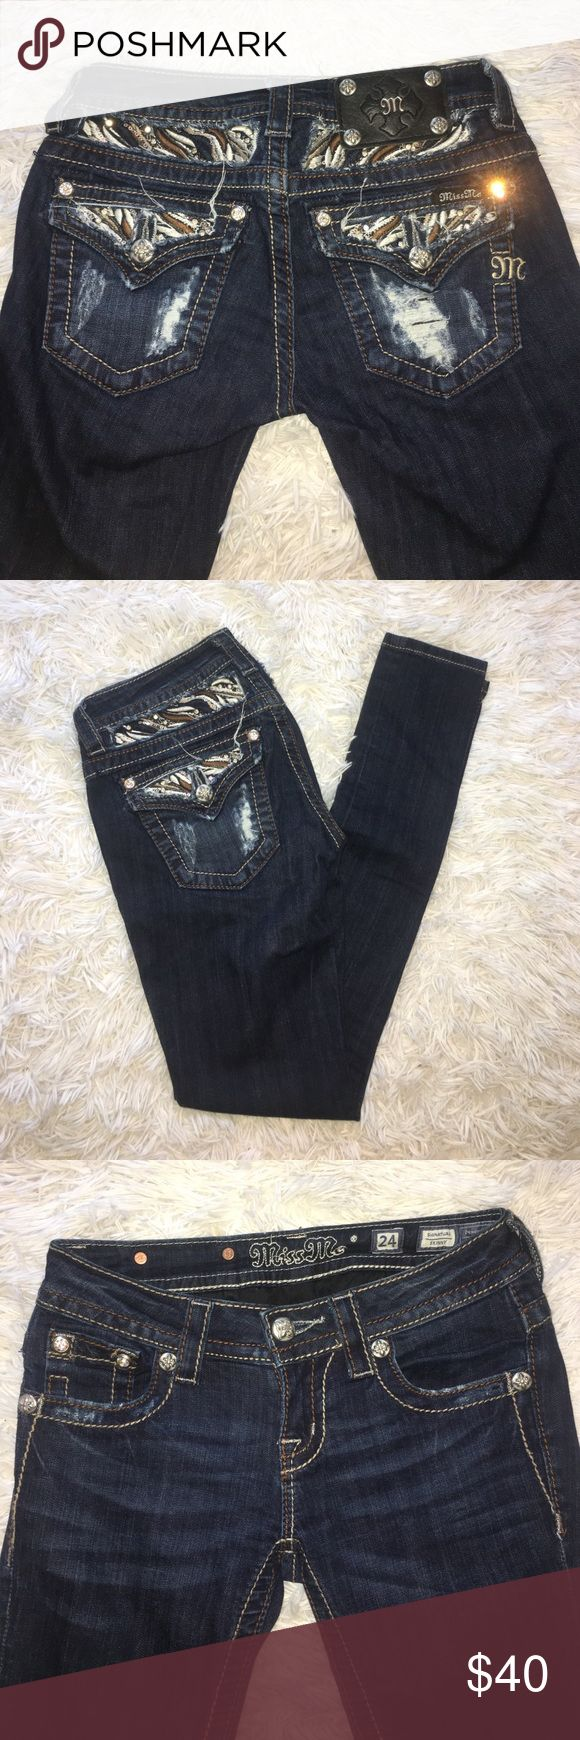 Miss Me Dark Denim Skinny Jeans Amazing condition. Dark Denim Miss Me Skinny Jeans only worn a couple of times! Super cute pocket brown stitching, rhinestones, sequins and hole details. Miss Me Jeans Skinny